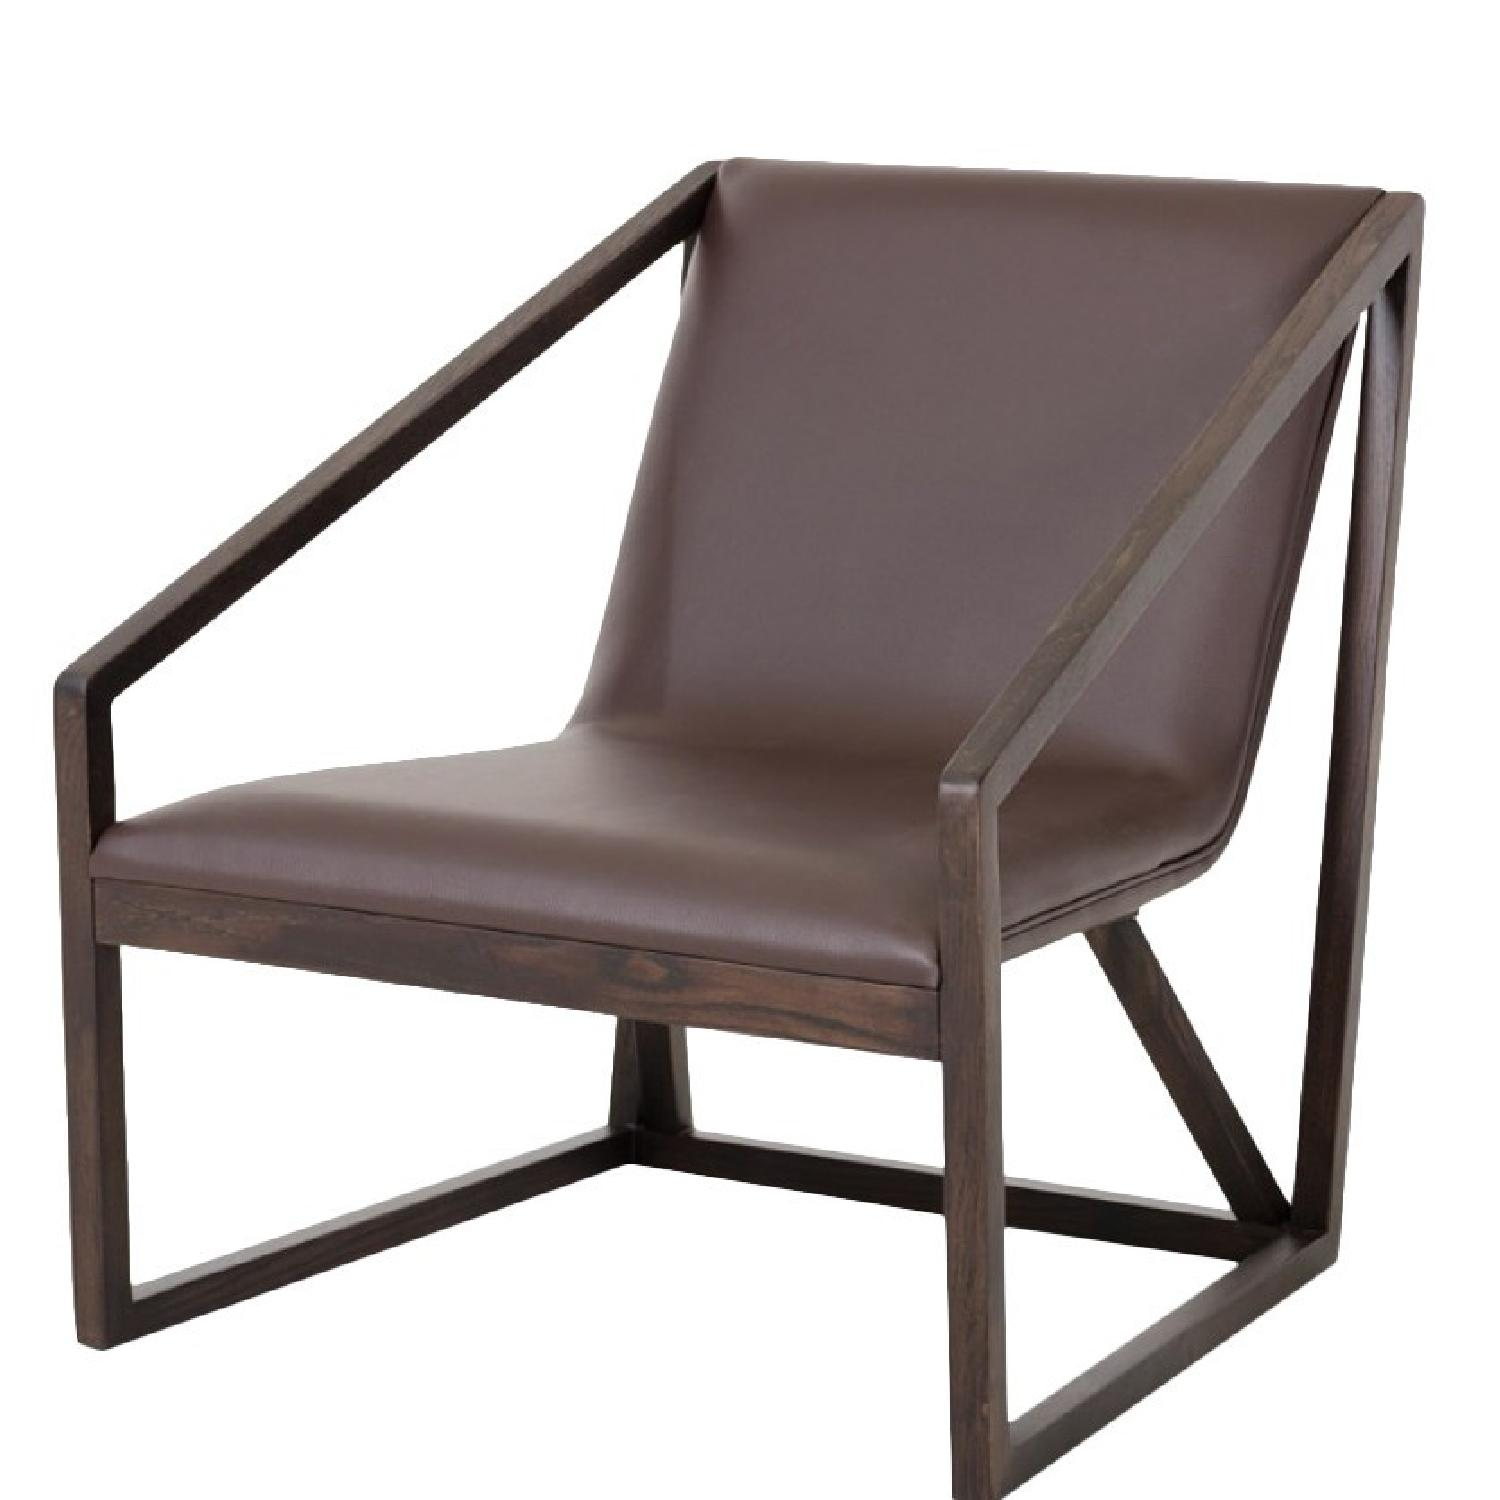 VIG Furniture Divani Casa Taranto Lounge Chair - image-0